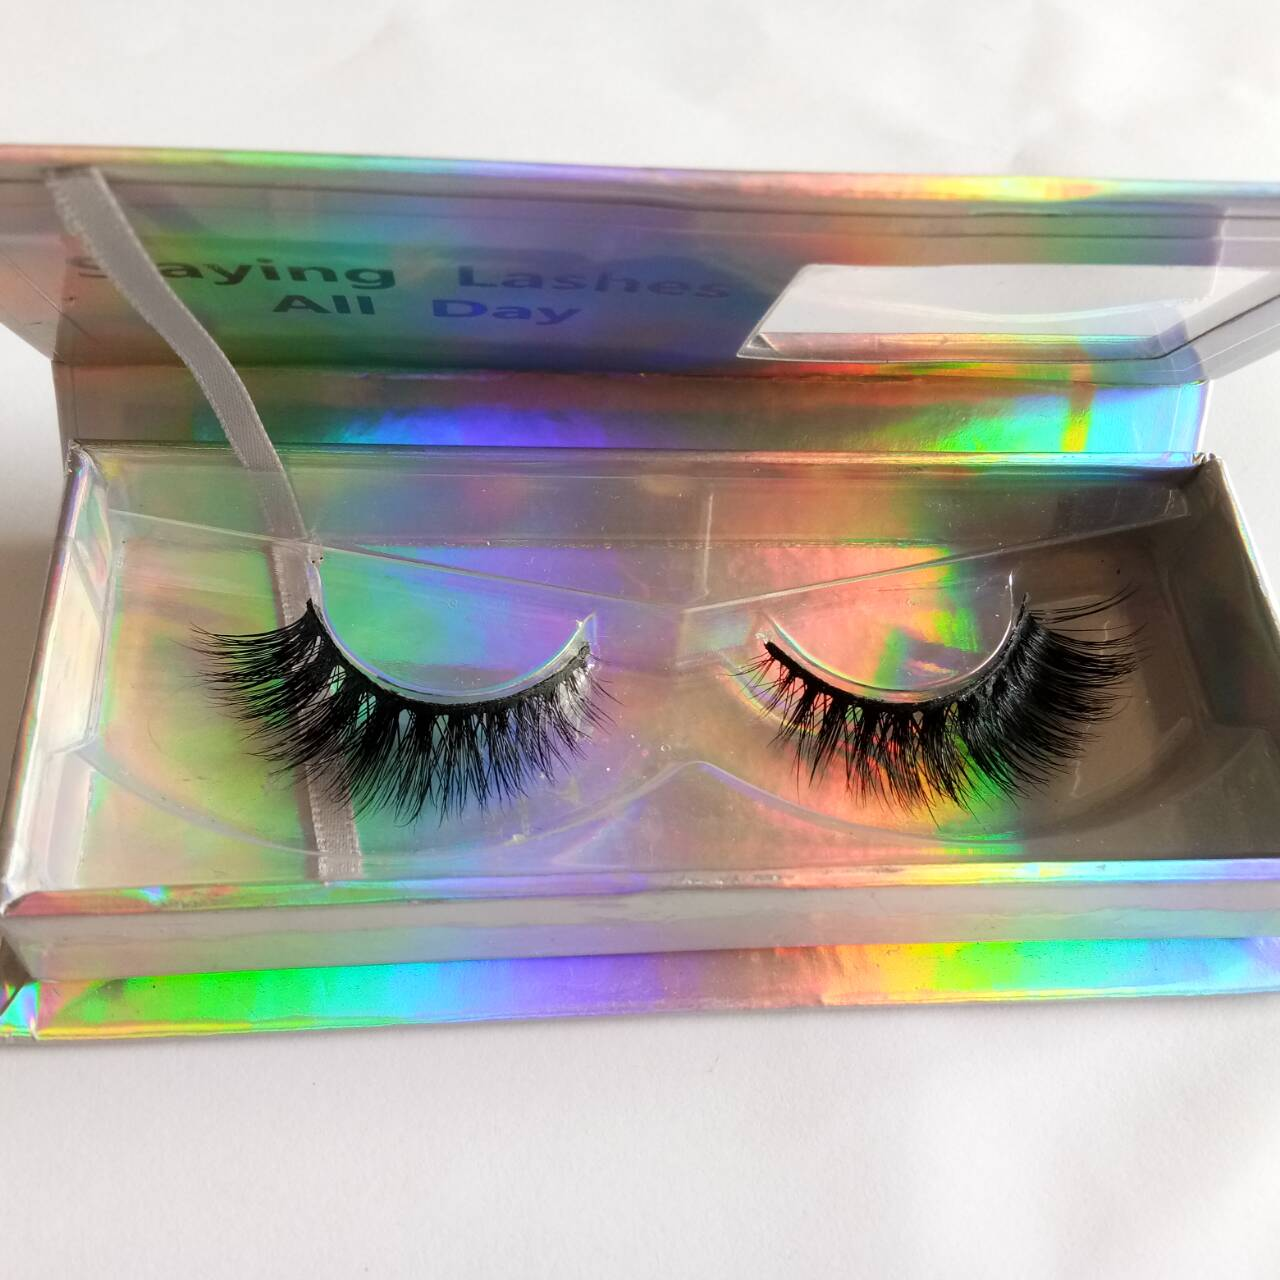 Mink Lashes Wholesale Vendor Supplies Handmade 3d Mink Lashes With Laser  Silver Packaging - Buy Mink Lashes Wholesale,Lashes Vendor,Lmink Lashes